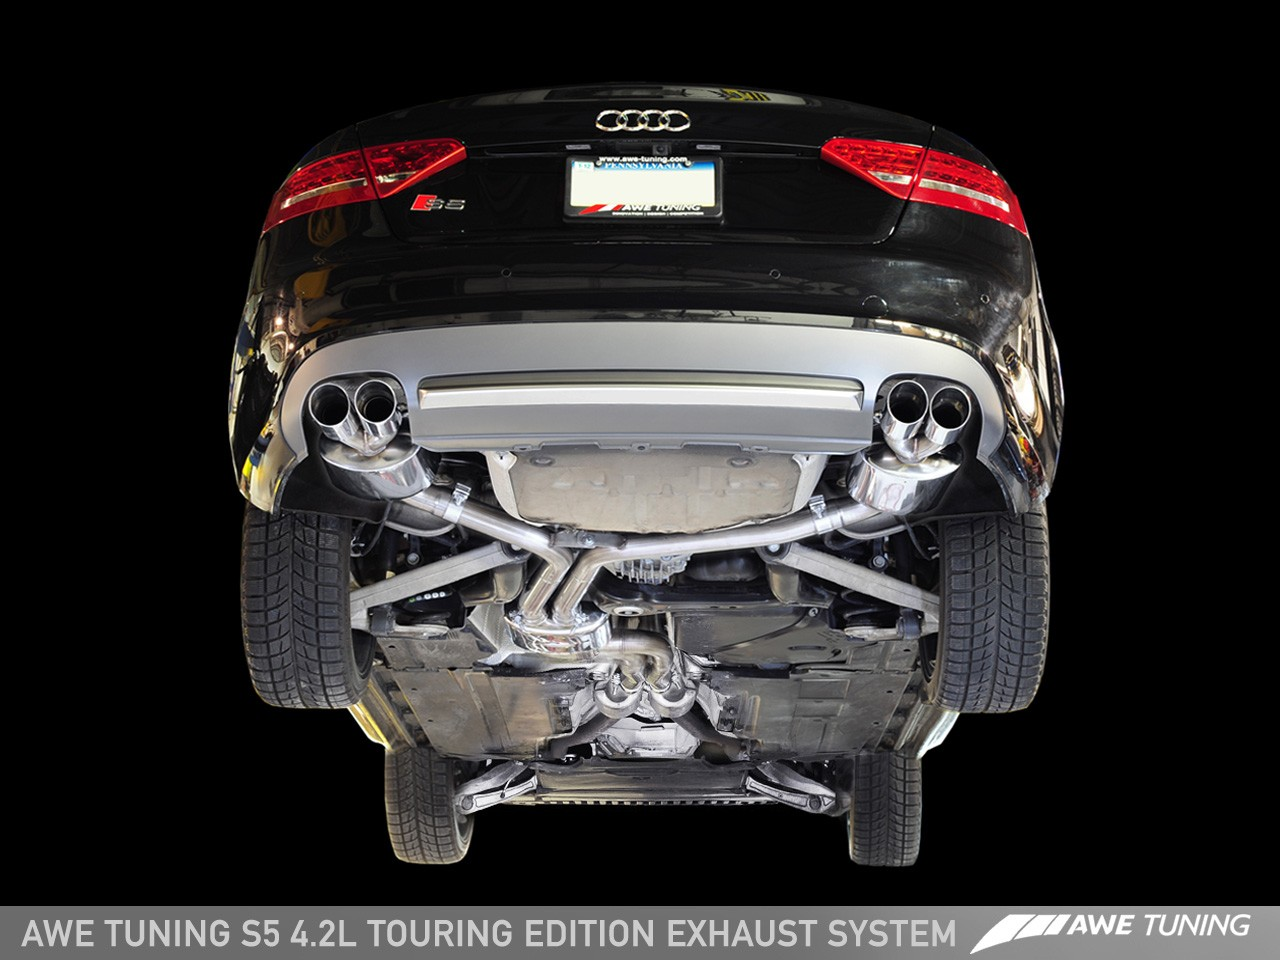 awe track and touring edition exhausts for audi s5 4 2l awe tuning rh awe tuning com Audi 5 Series Audi R6